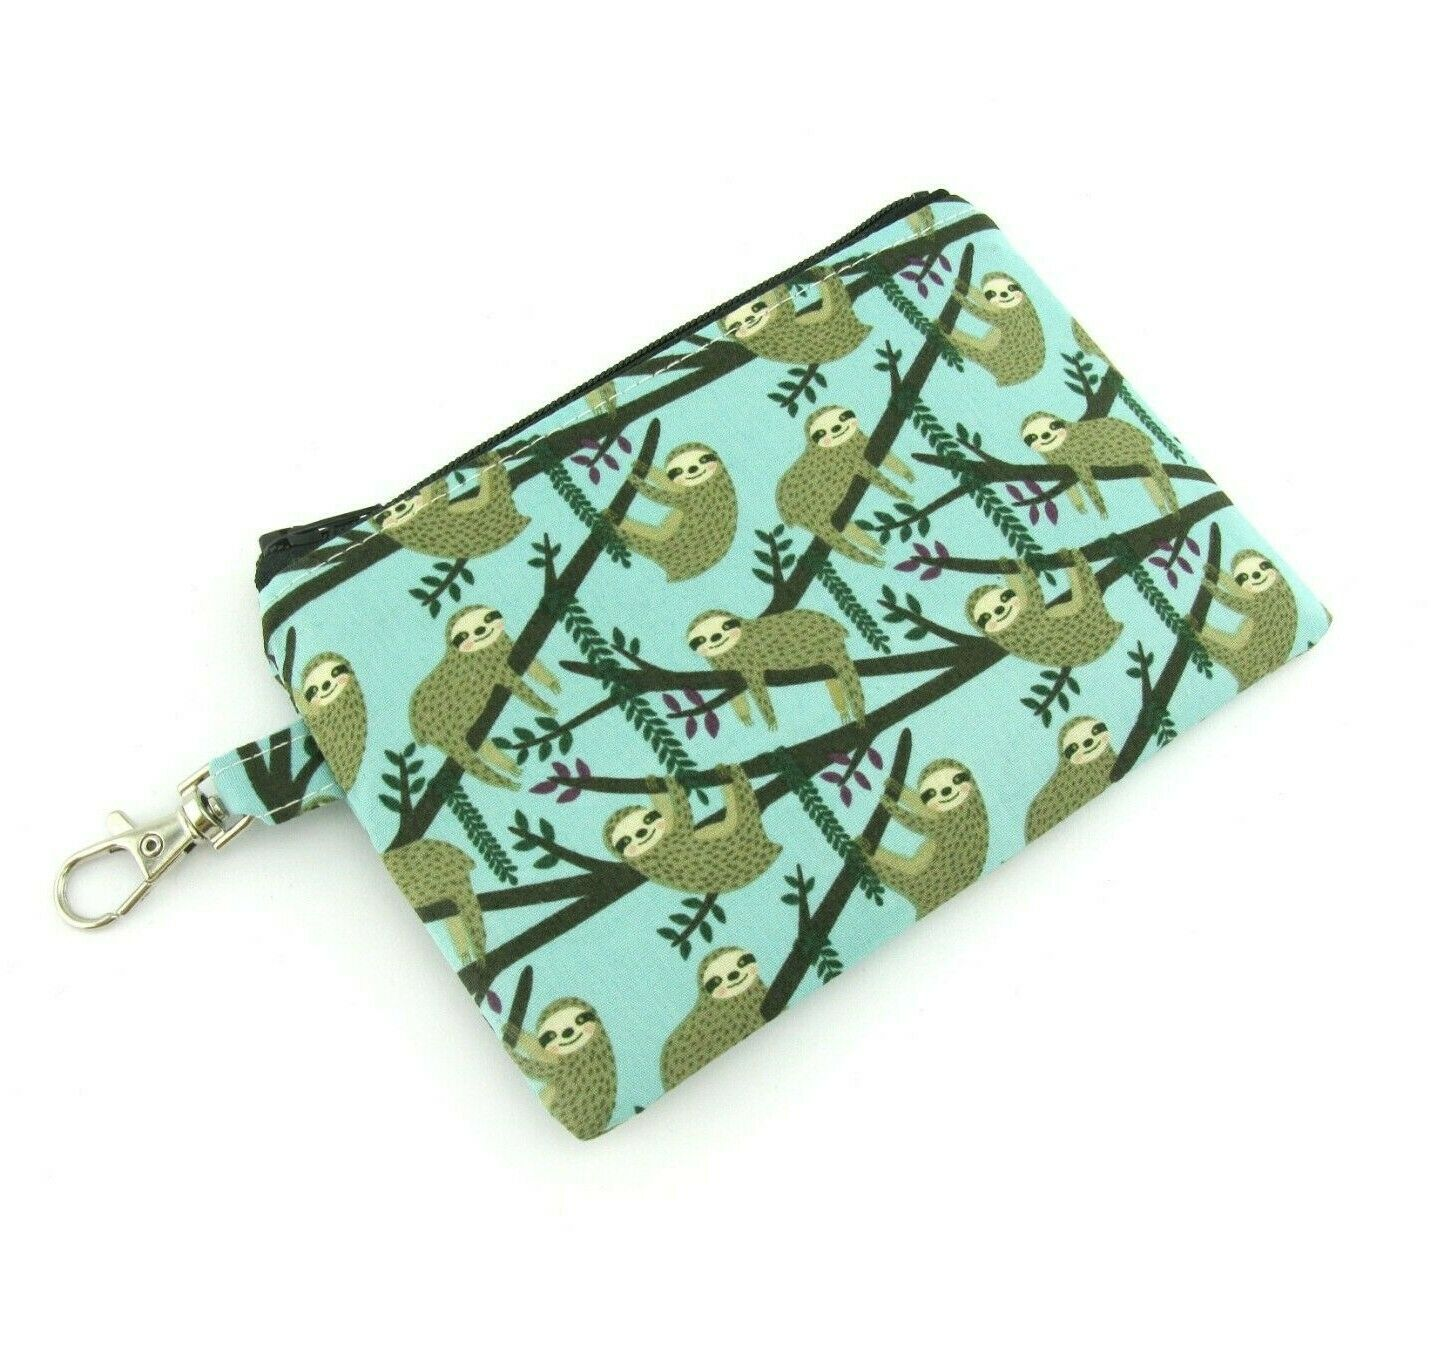 Lazy Sloth Small Keyring Coin Pouch, Boy Girls Kids Purse Wallet, Airpod Holder